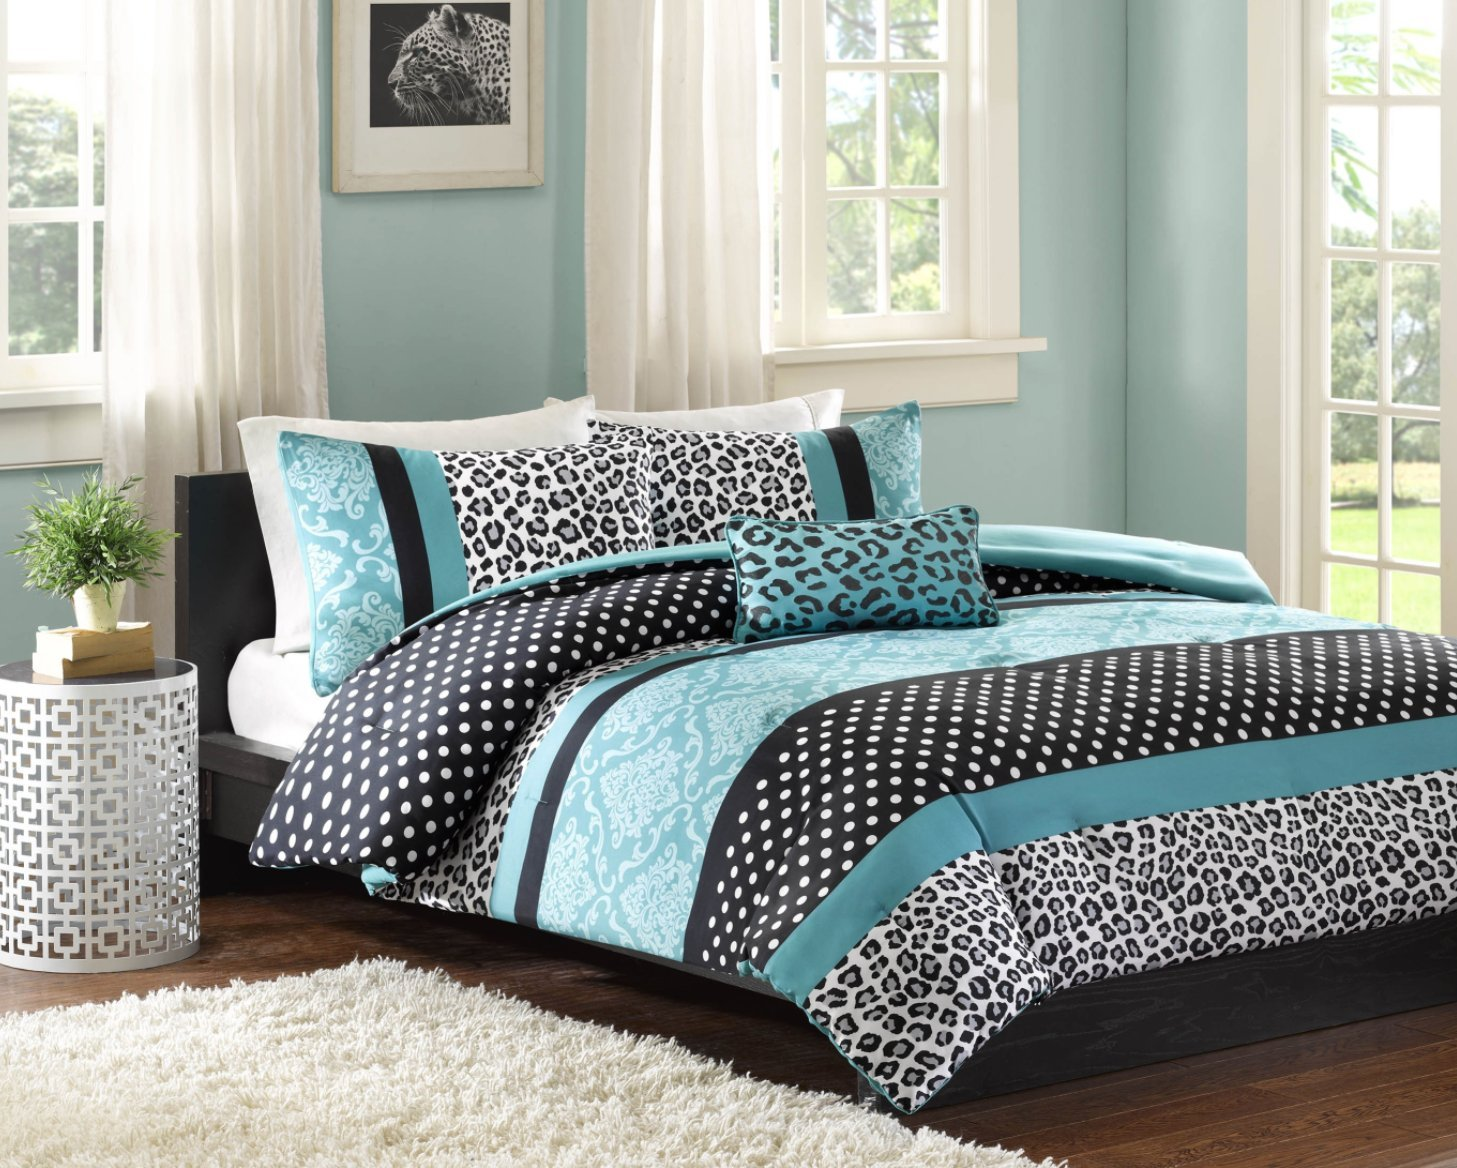 Comforter Bed Set Teen Bedding Modern Teal Black Animal Print Girls Bedspread